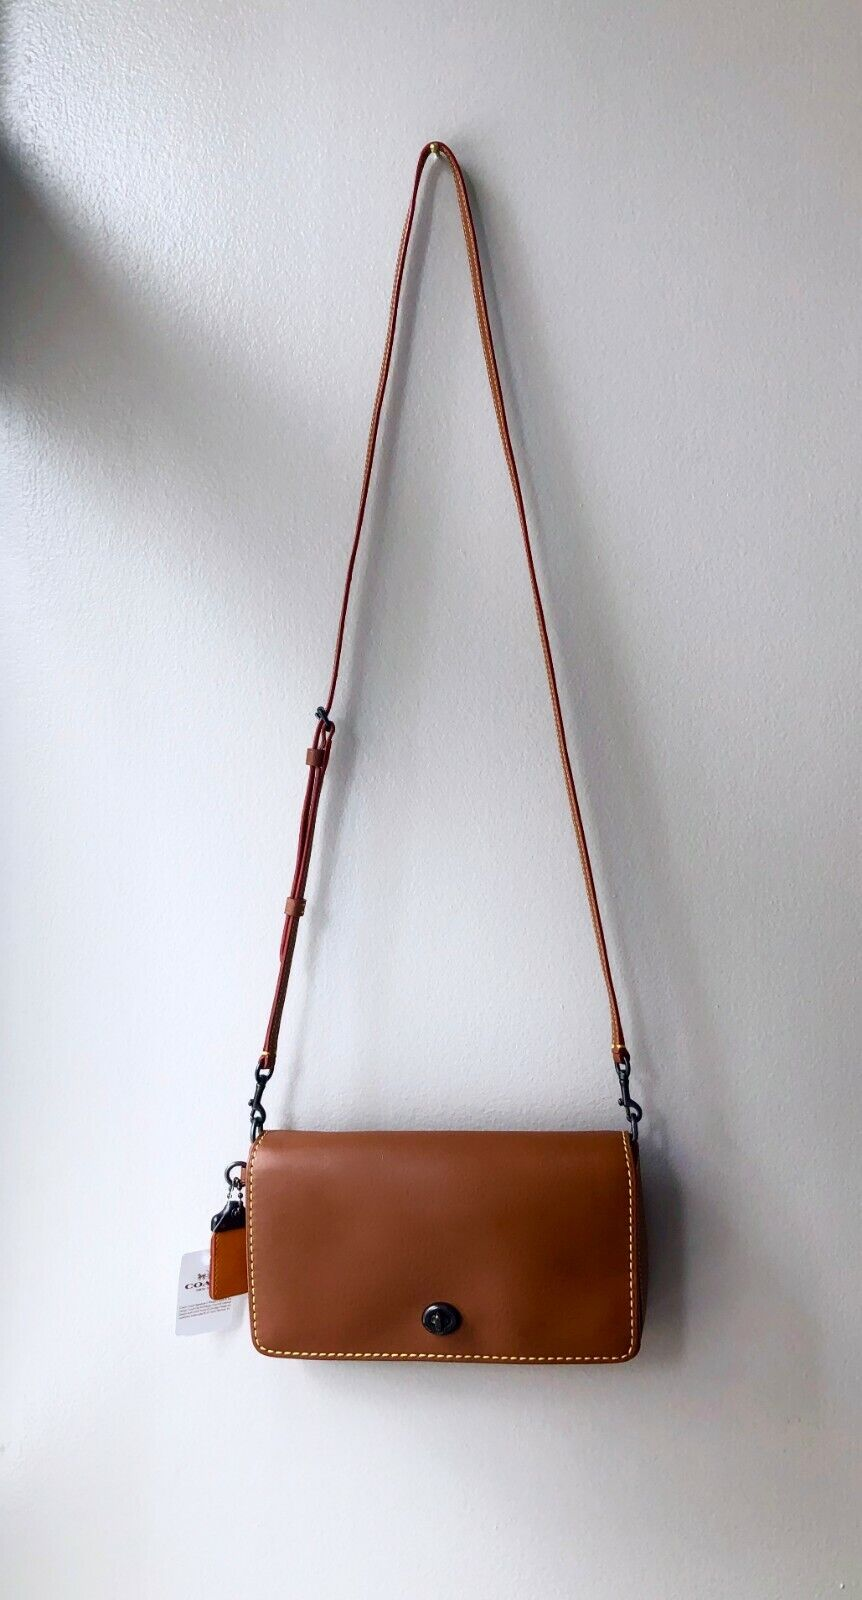 Sold Out NWT Coach 1941 DINKY Saddle Glovetaned Leather Shou